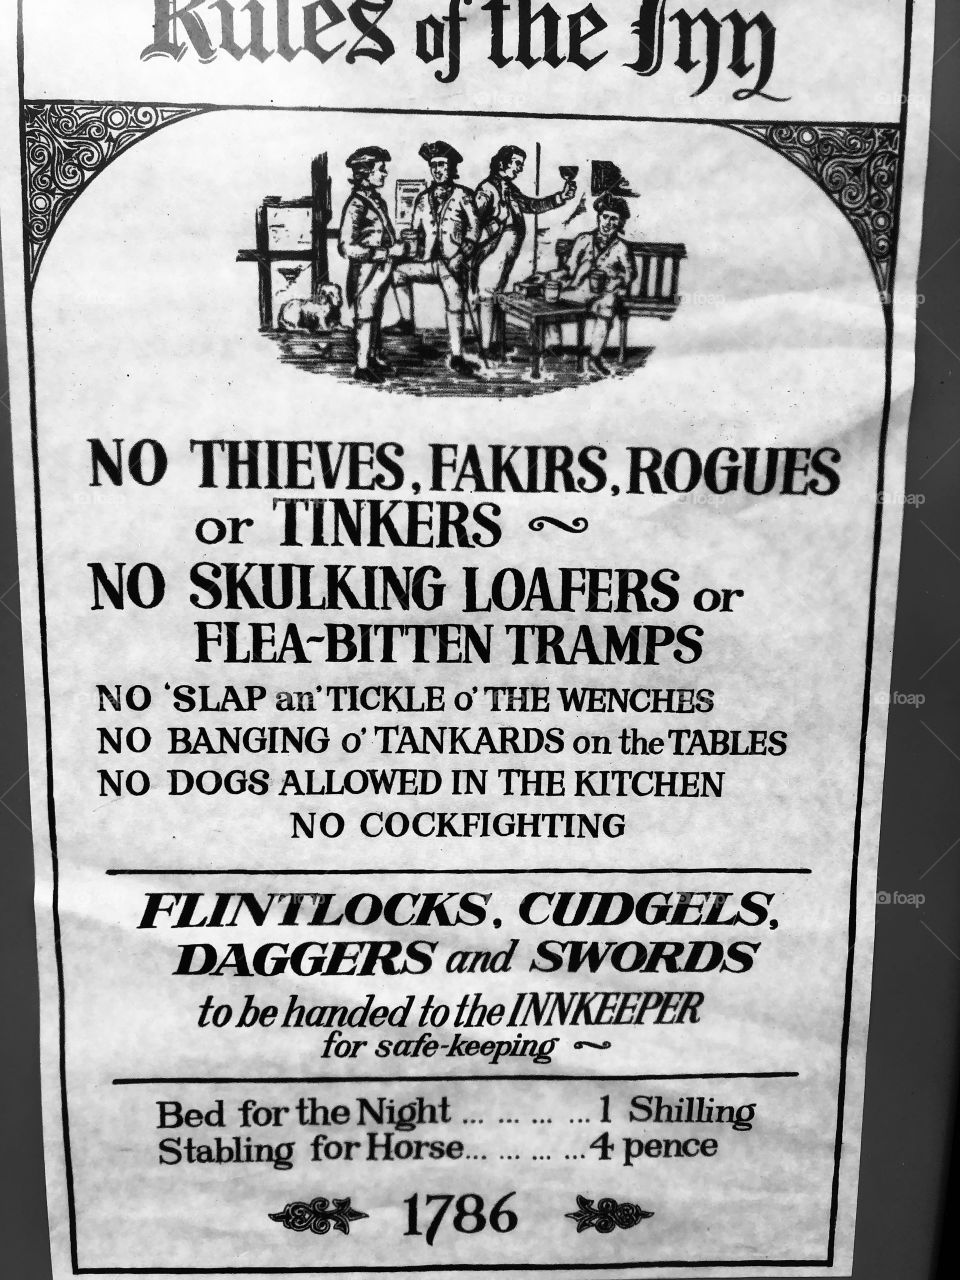 The hostelries in the late 18th century would not put up with very much bad behavior. Perhaps life was more orderly and better mannered then, than in today's 21st century Brexit.